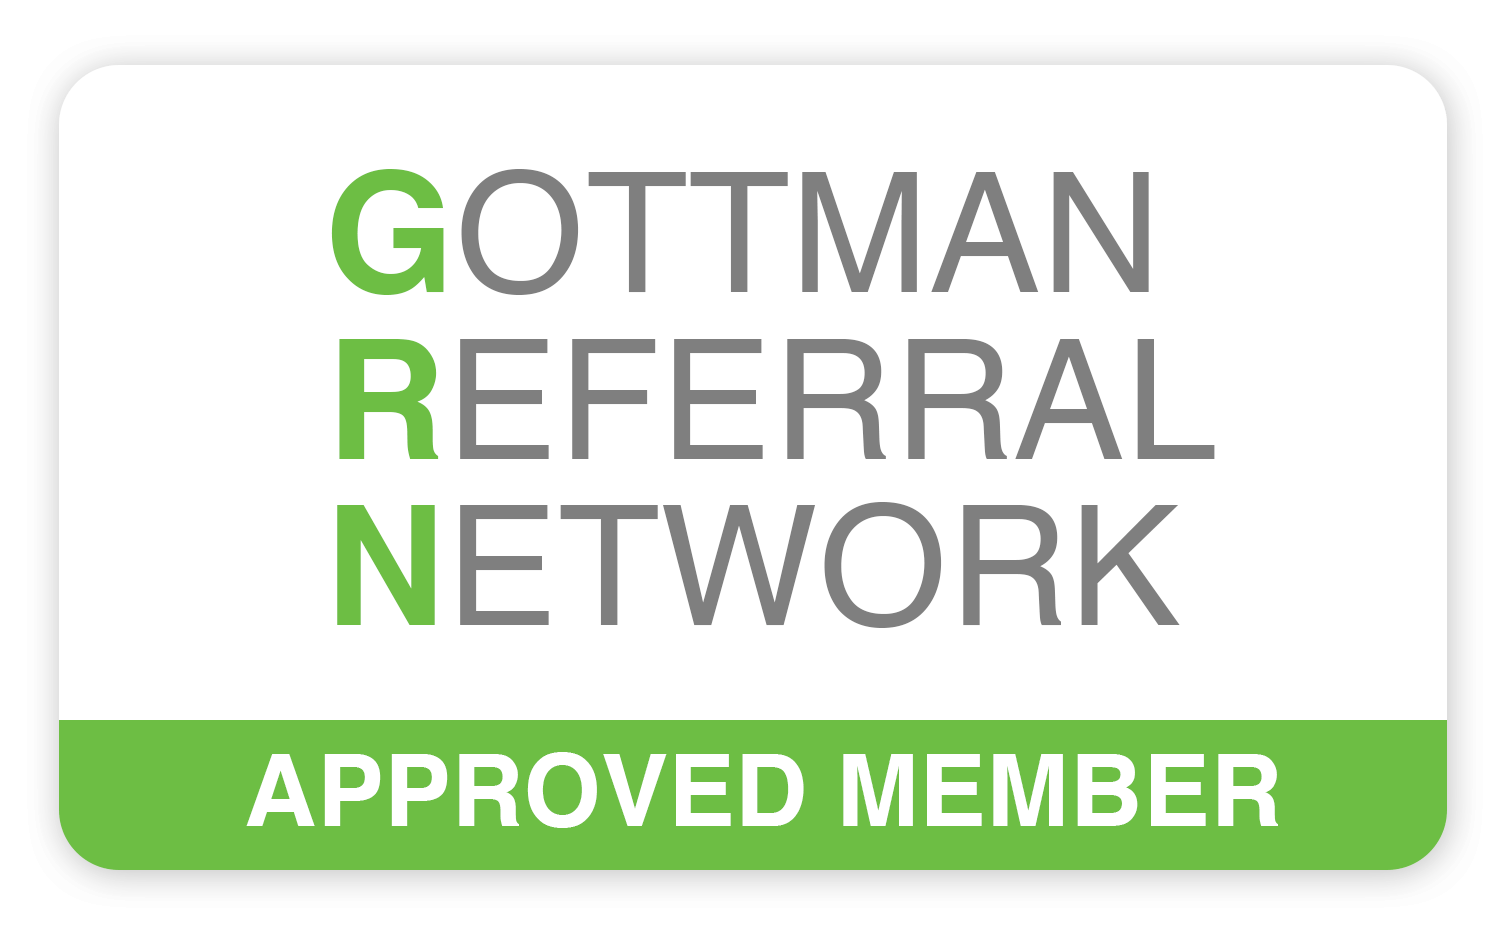 David Tolbert's profile on the Gottman Referral Network